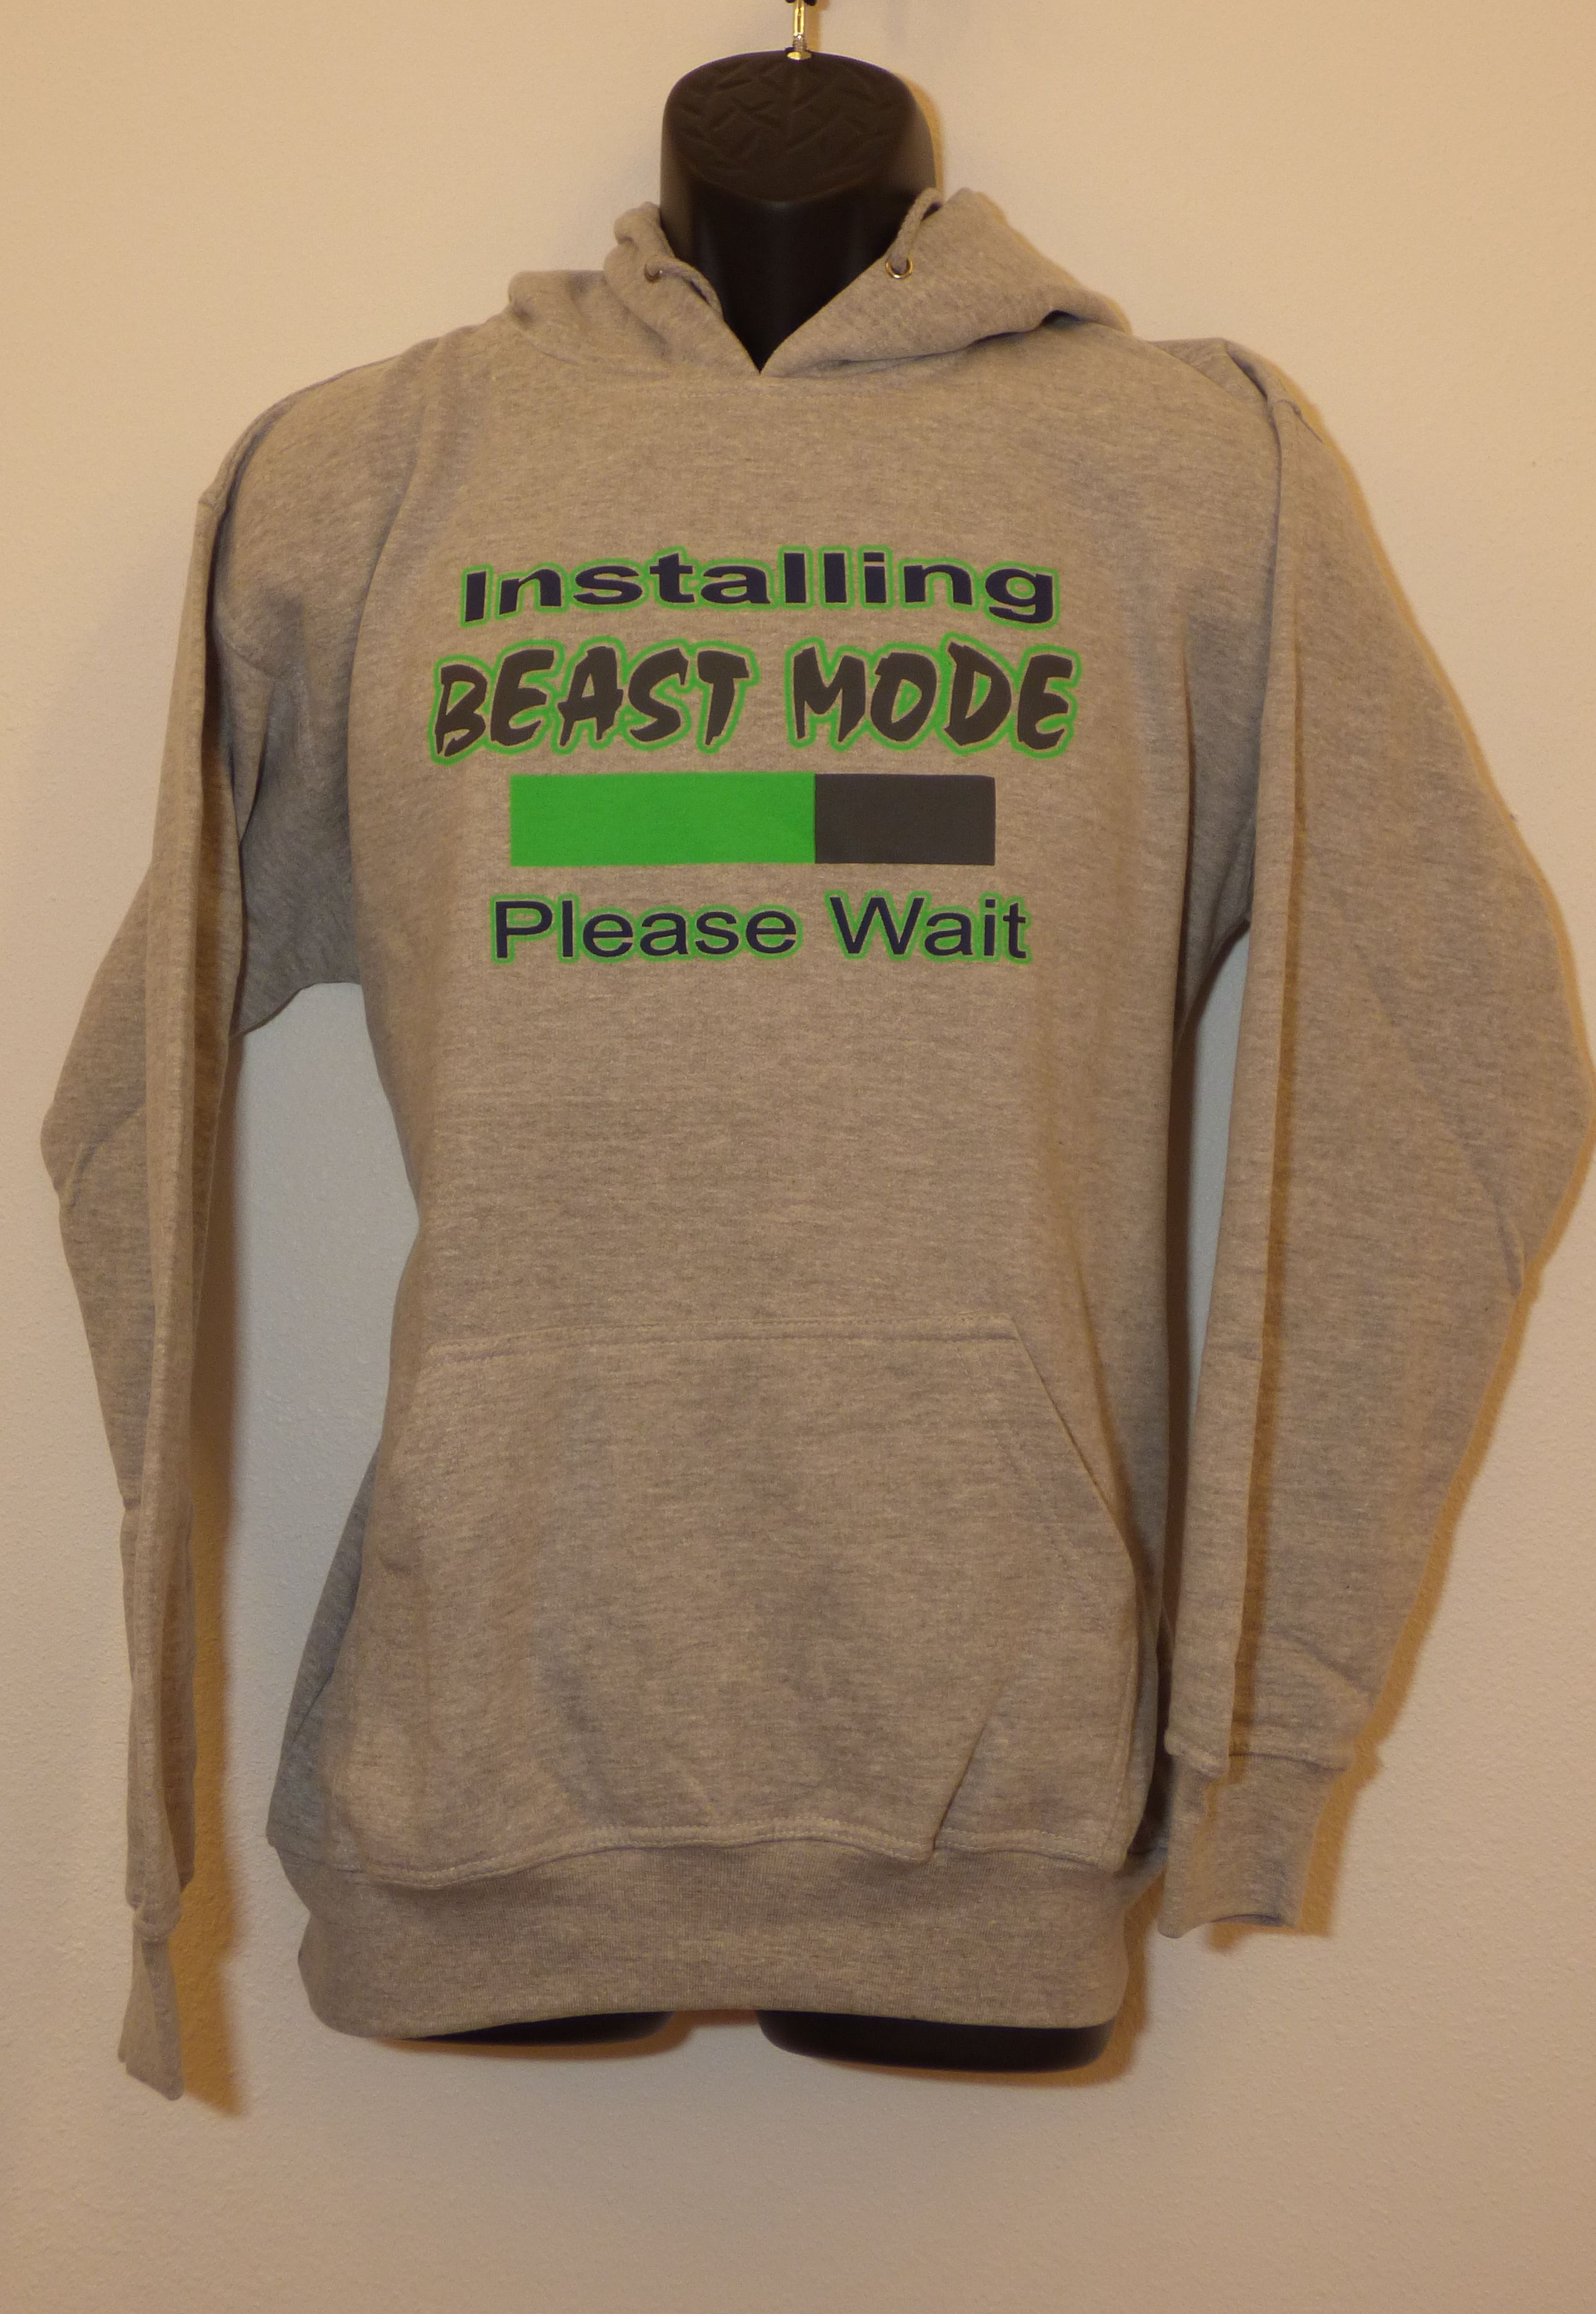 'Installing Beast Mode Please Wait' hoodie